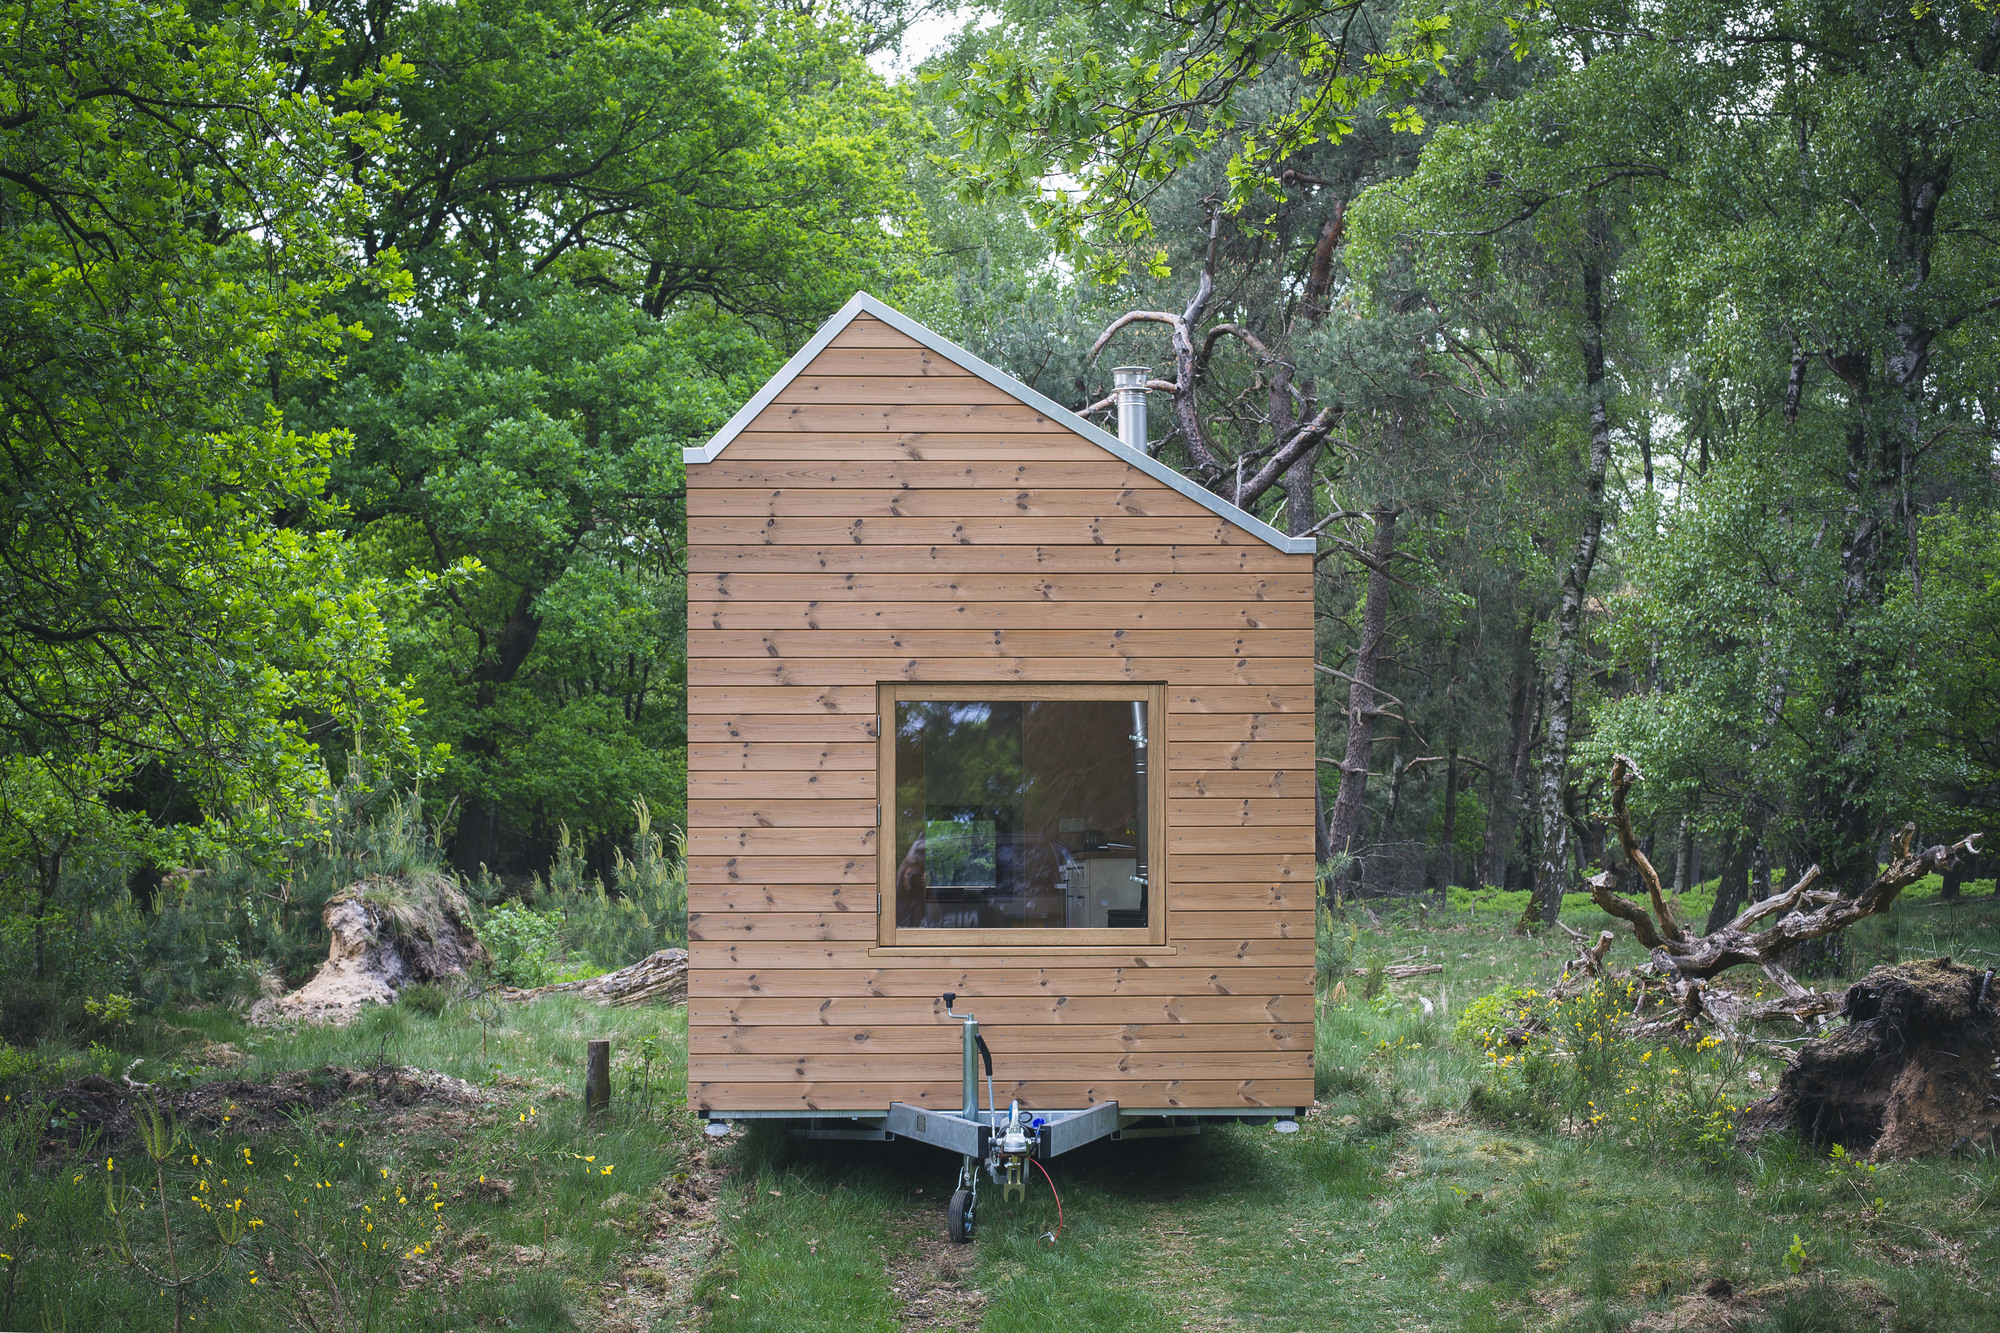 Gallery of contemporary tiny house walden studio 9 for Tiny house photo gallery